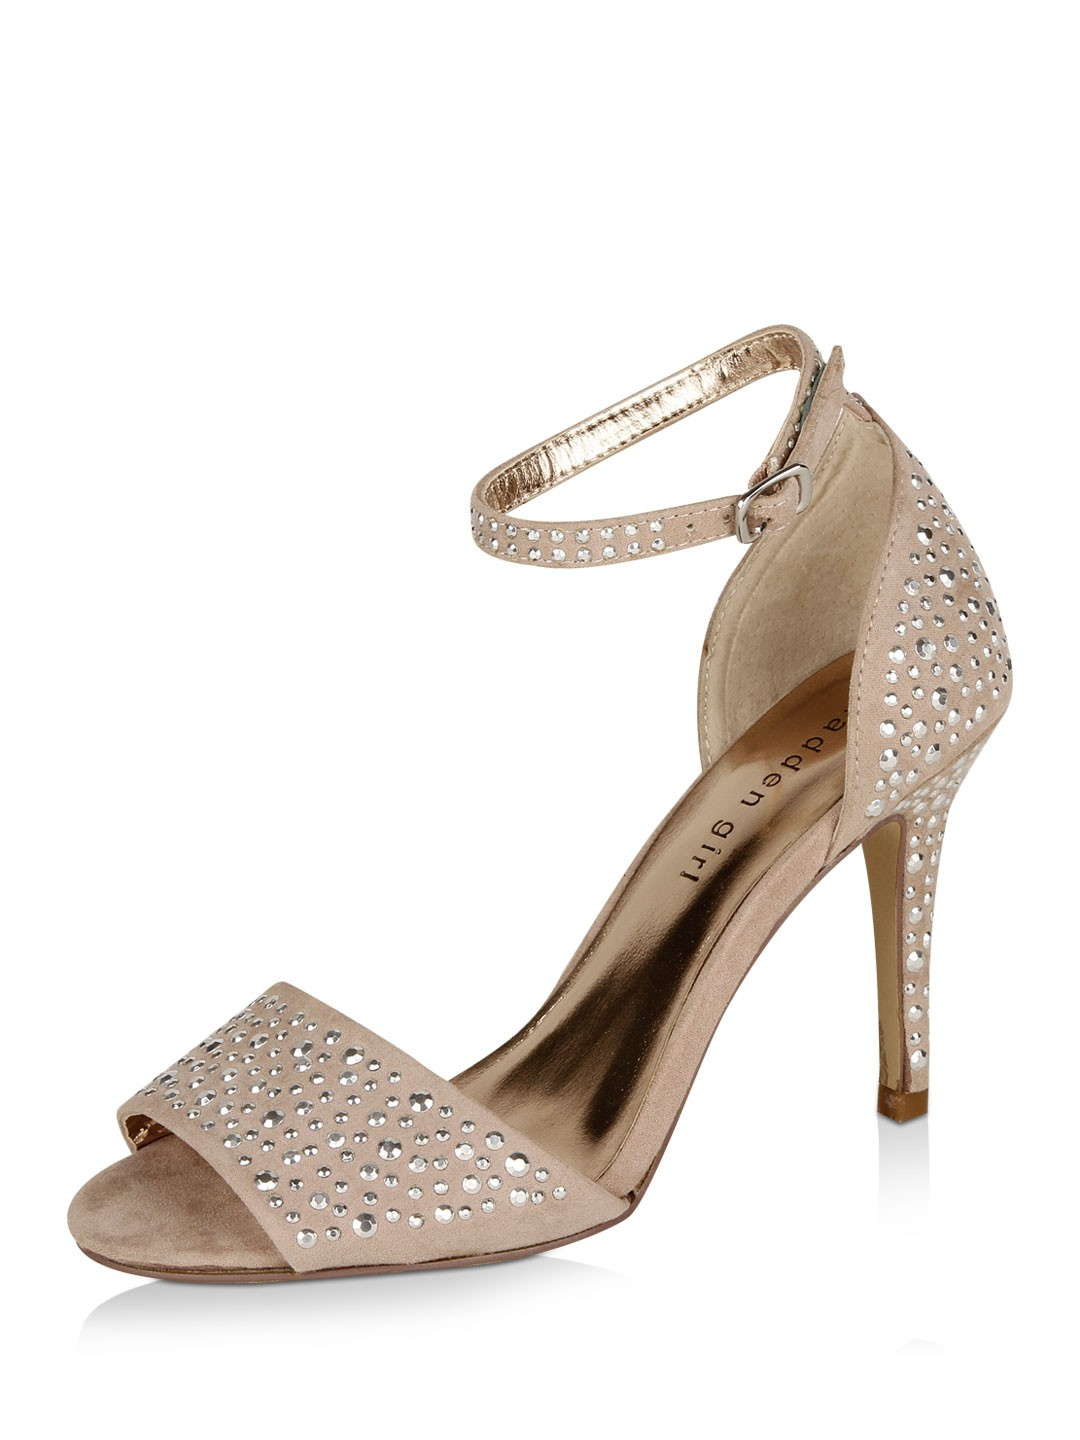 Buy Steve Madden Shoes Online and Make A Haute Couture Fashion Statement. When it comes to designer footwear, Steve Madden is a reputed global brand that designs, manufactures and sells stylish and stunning shoes and sandals for men, women and children.